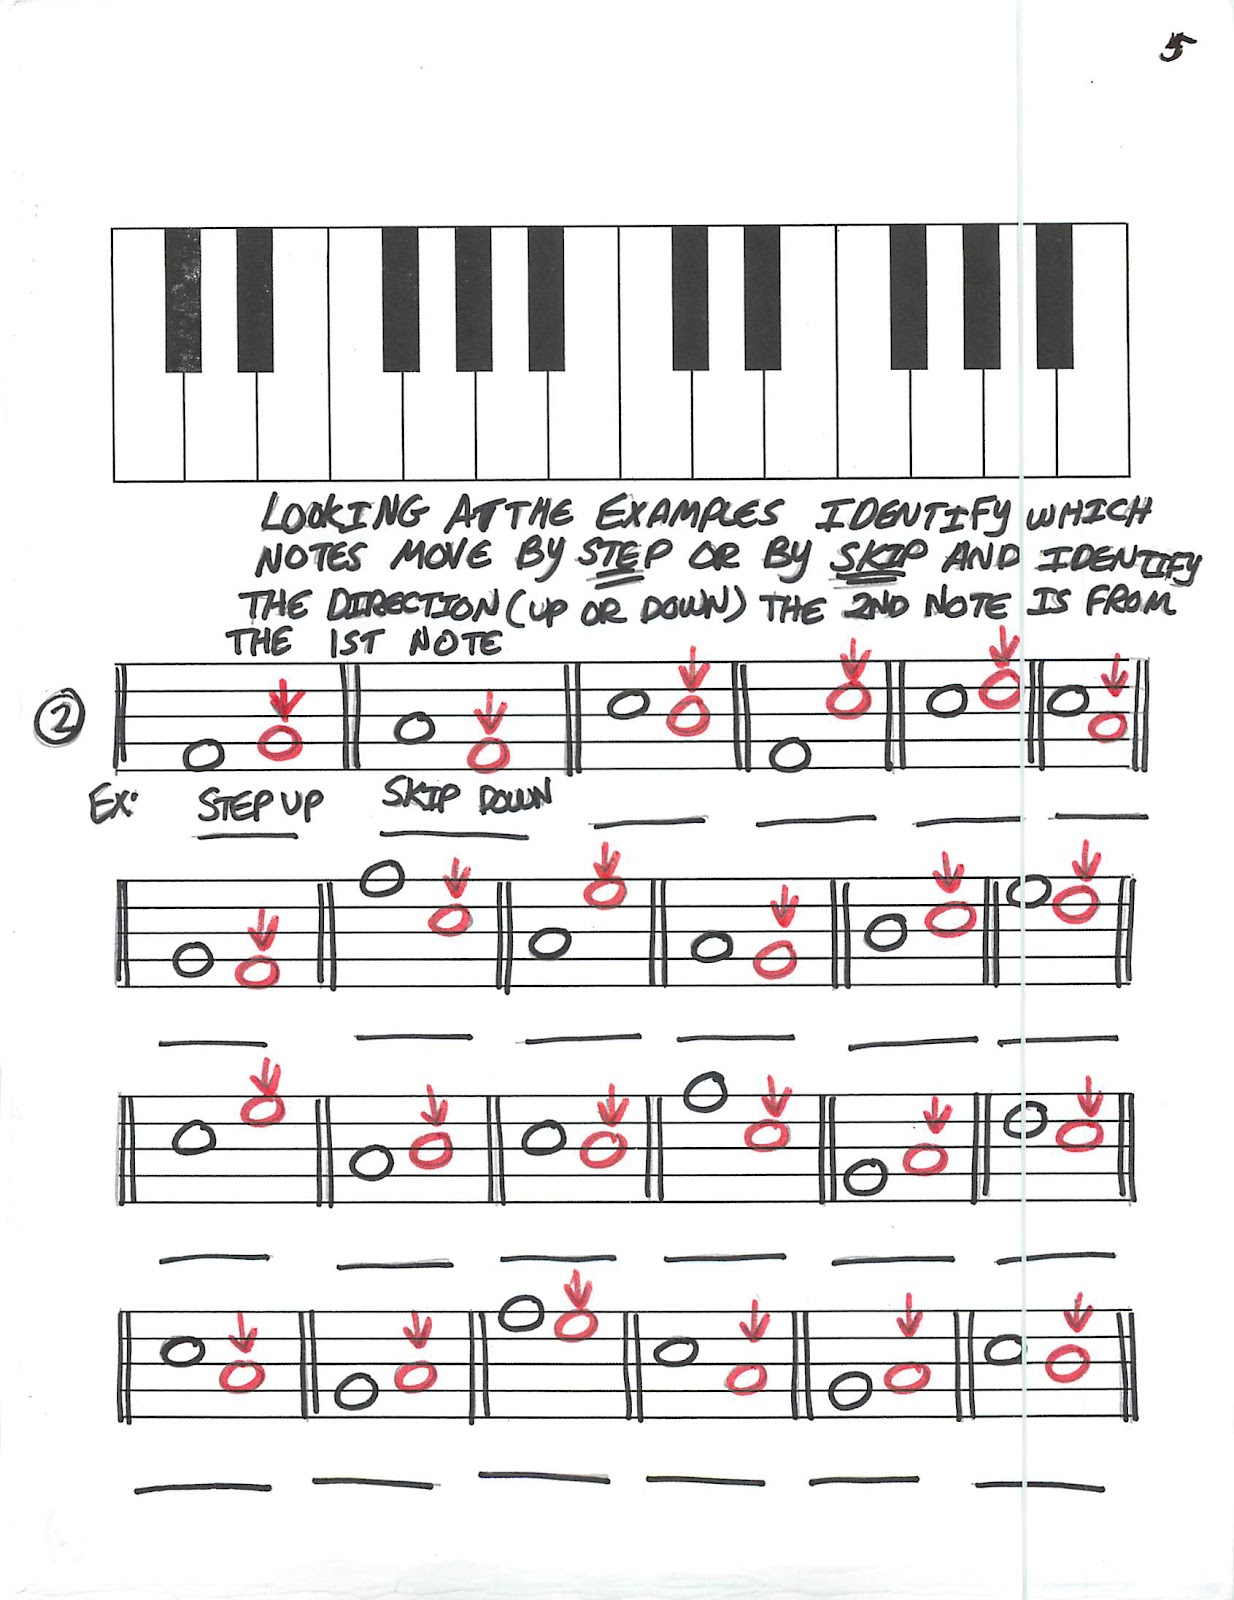 Miss Jacobson's Music: THEORY #5: STEPS and SKIPS